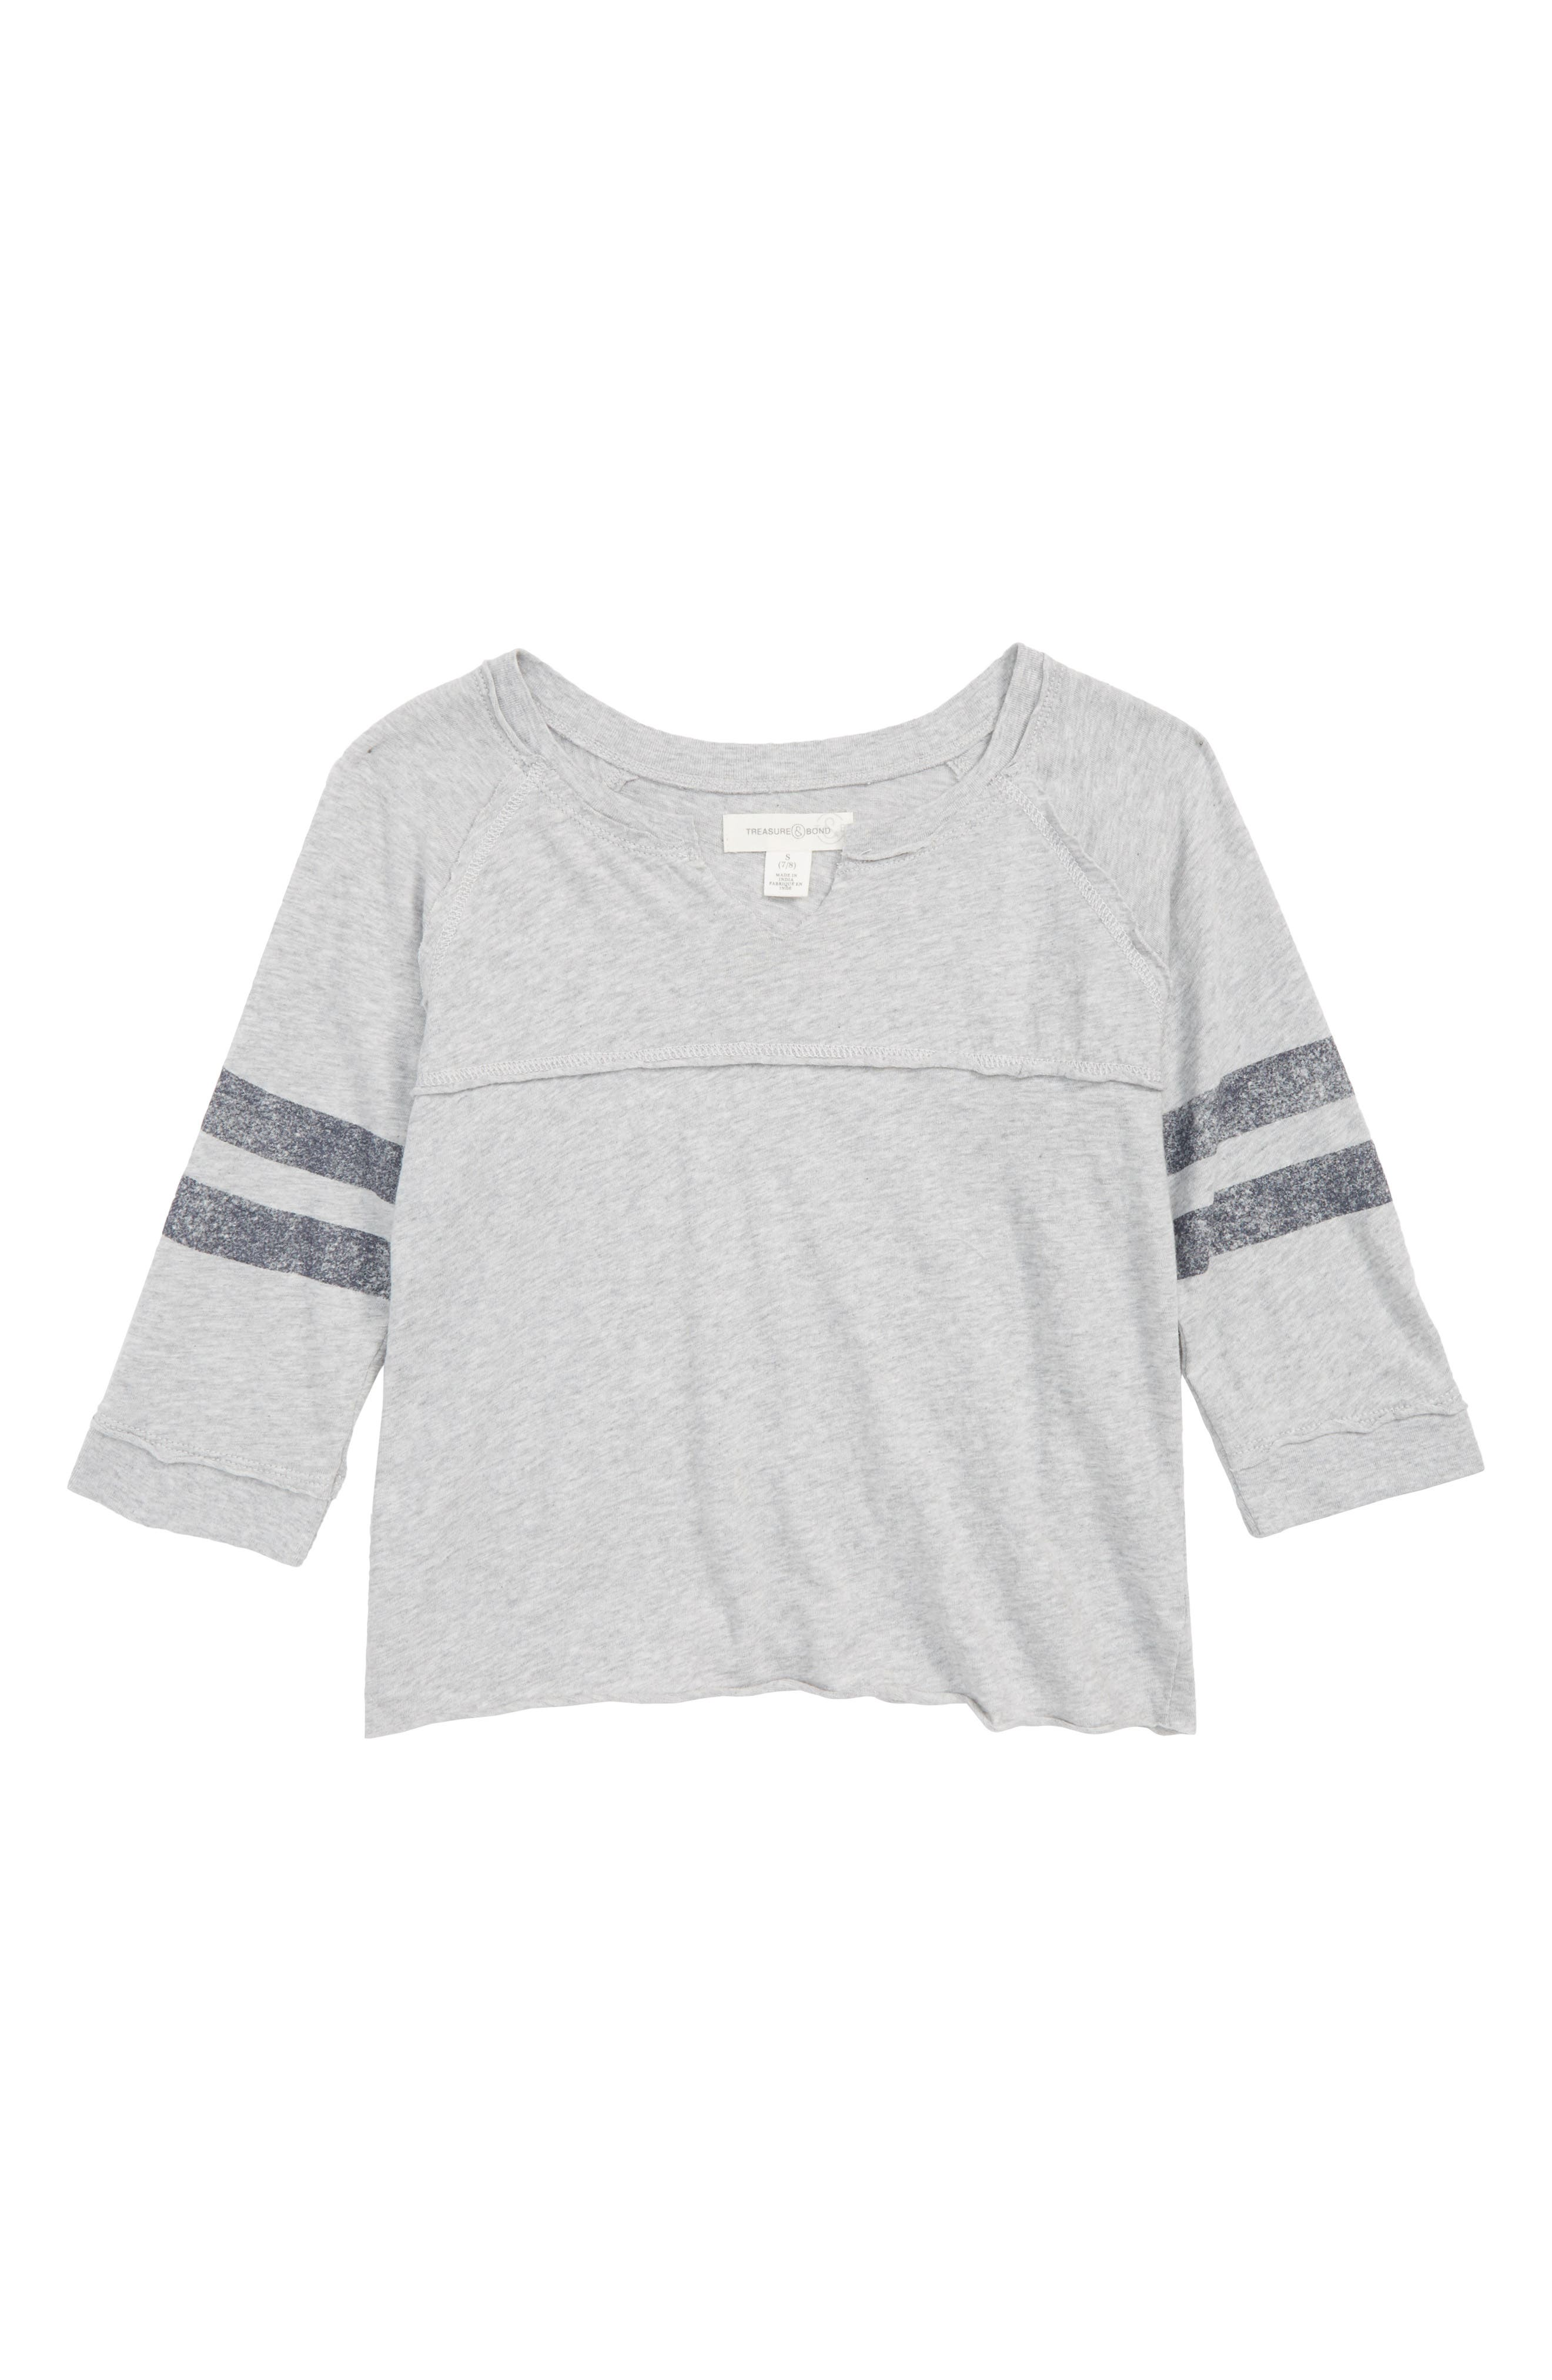 Sporty Vintage Tee,                         Main,                         color, 050